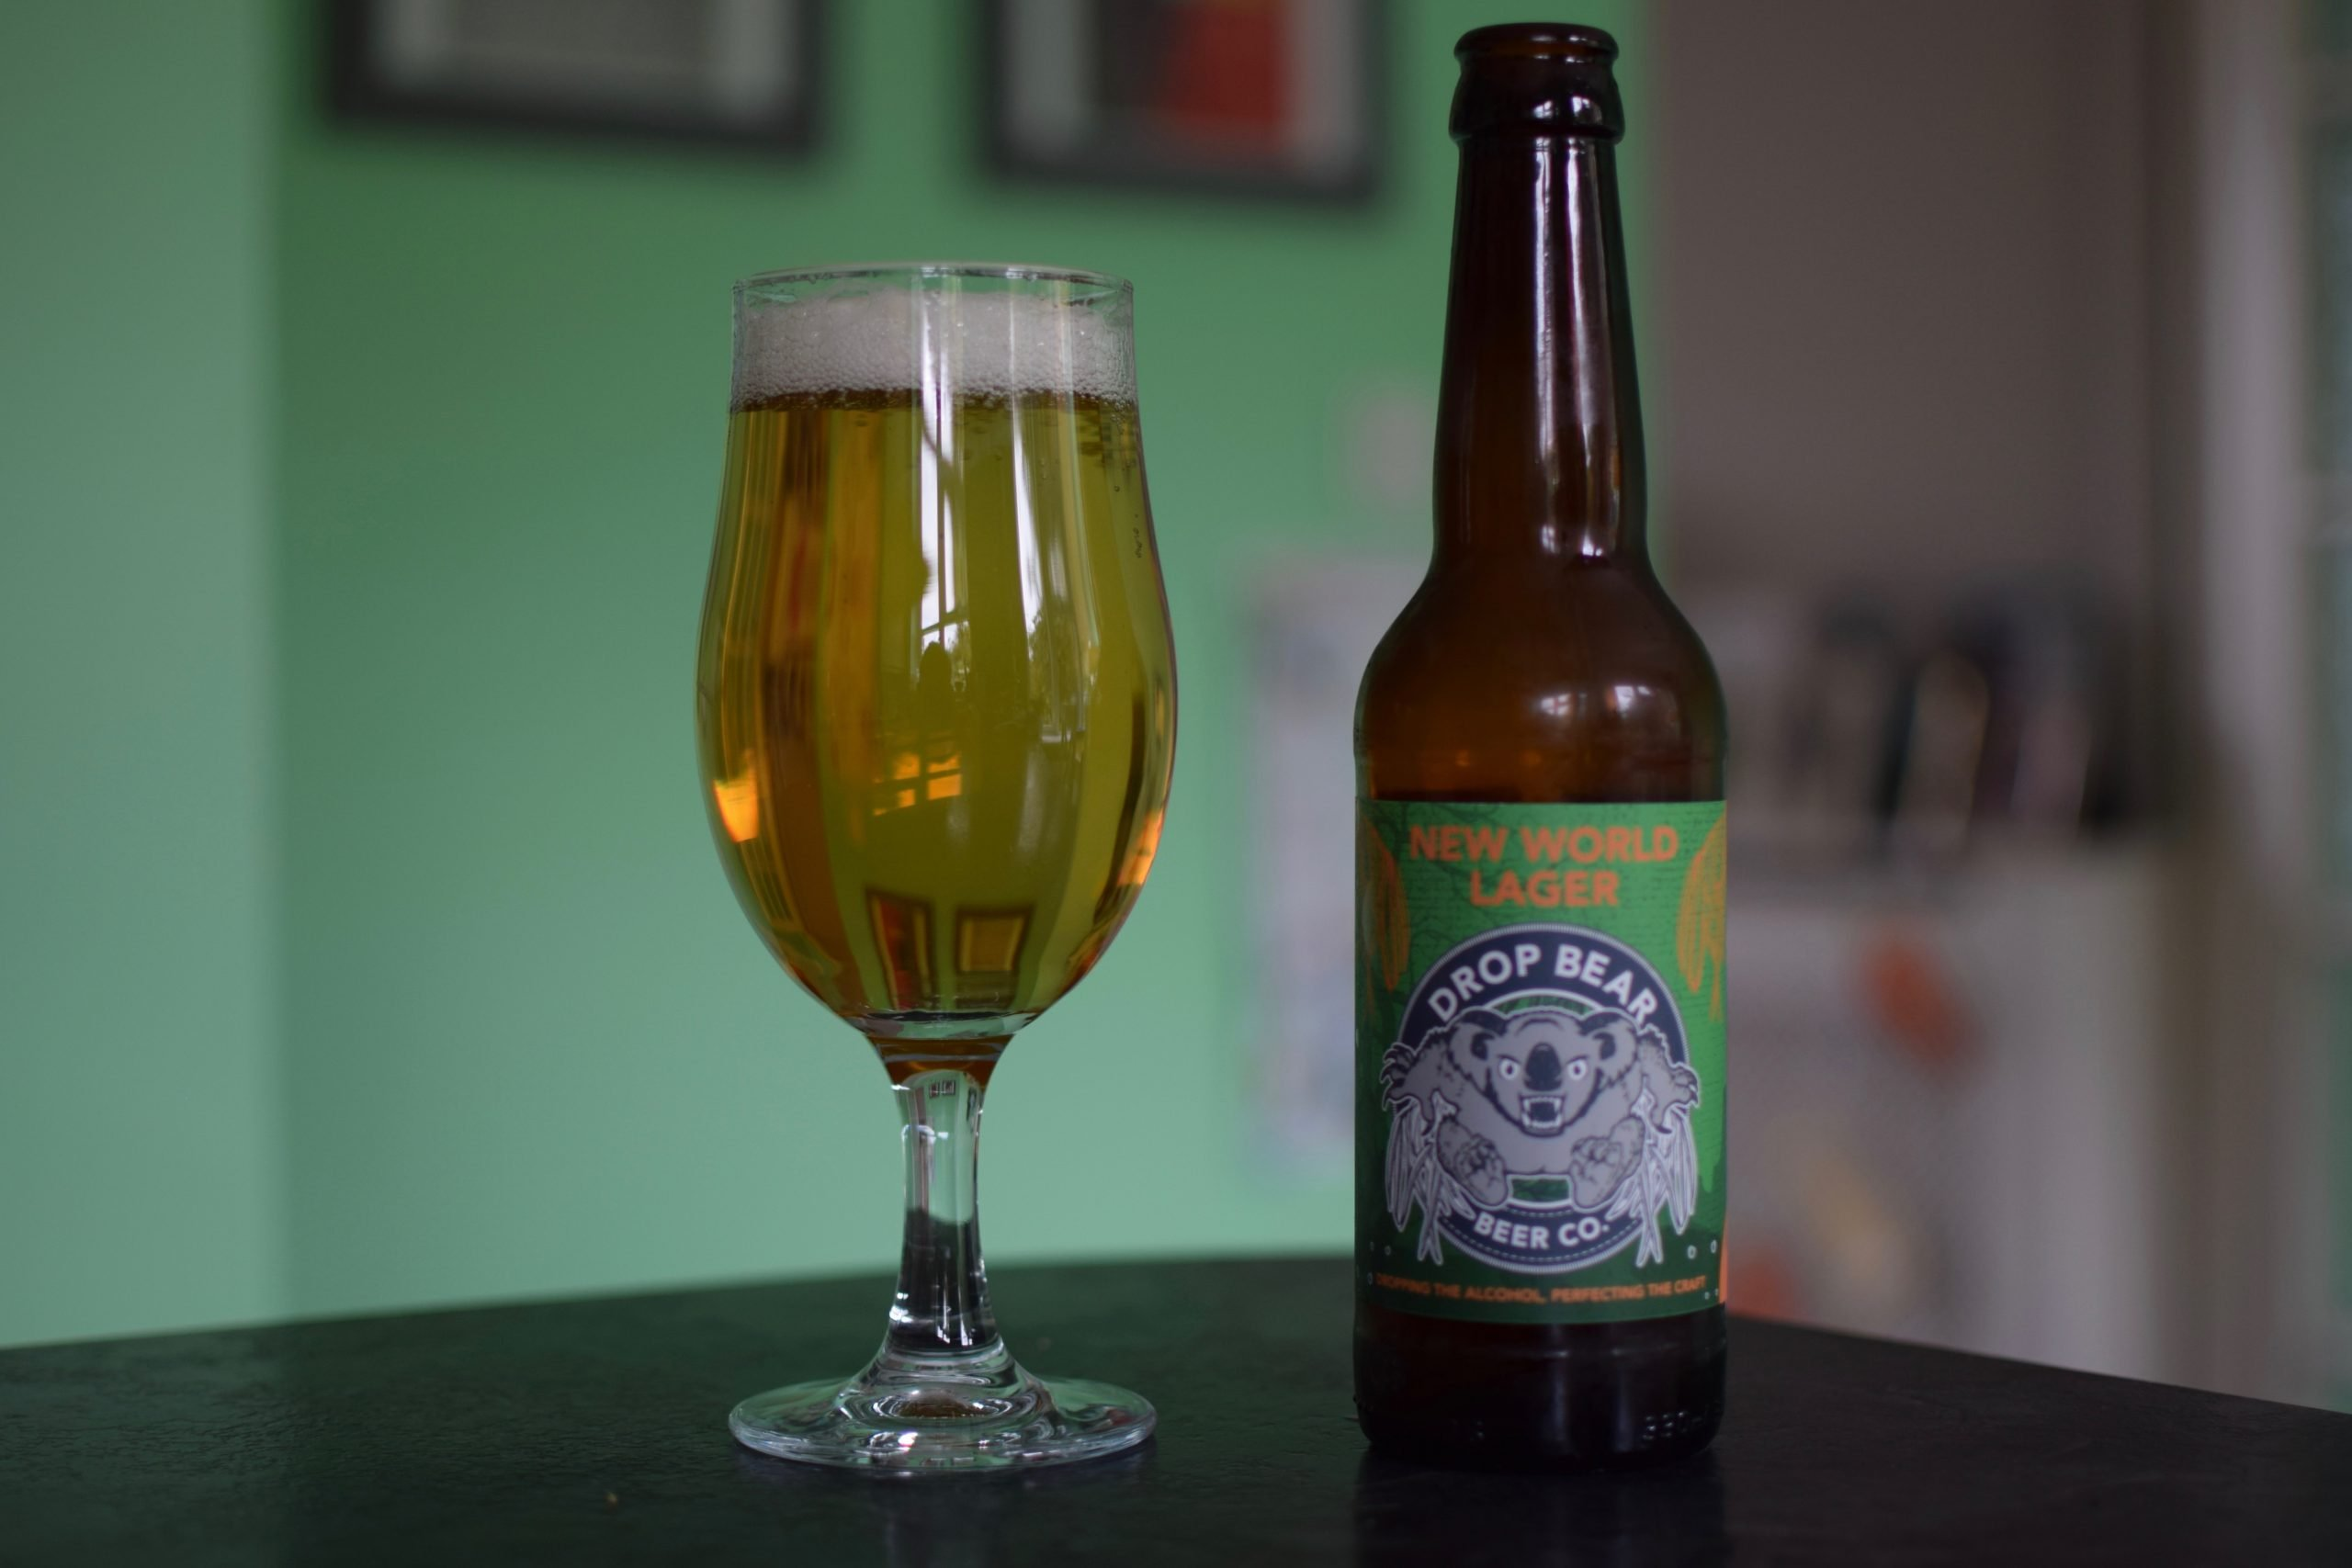 """""""New World Lager"""" (0.5%) by Drop Bear Beer Co"""